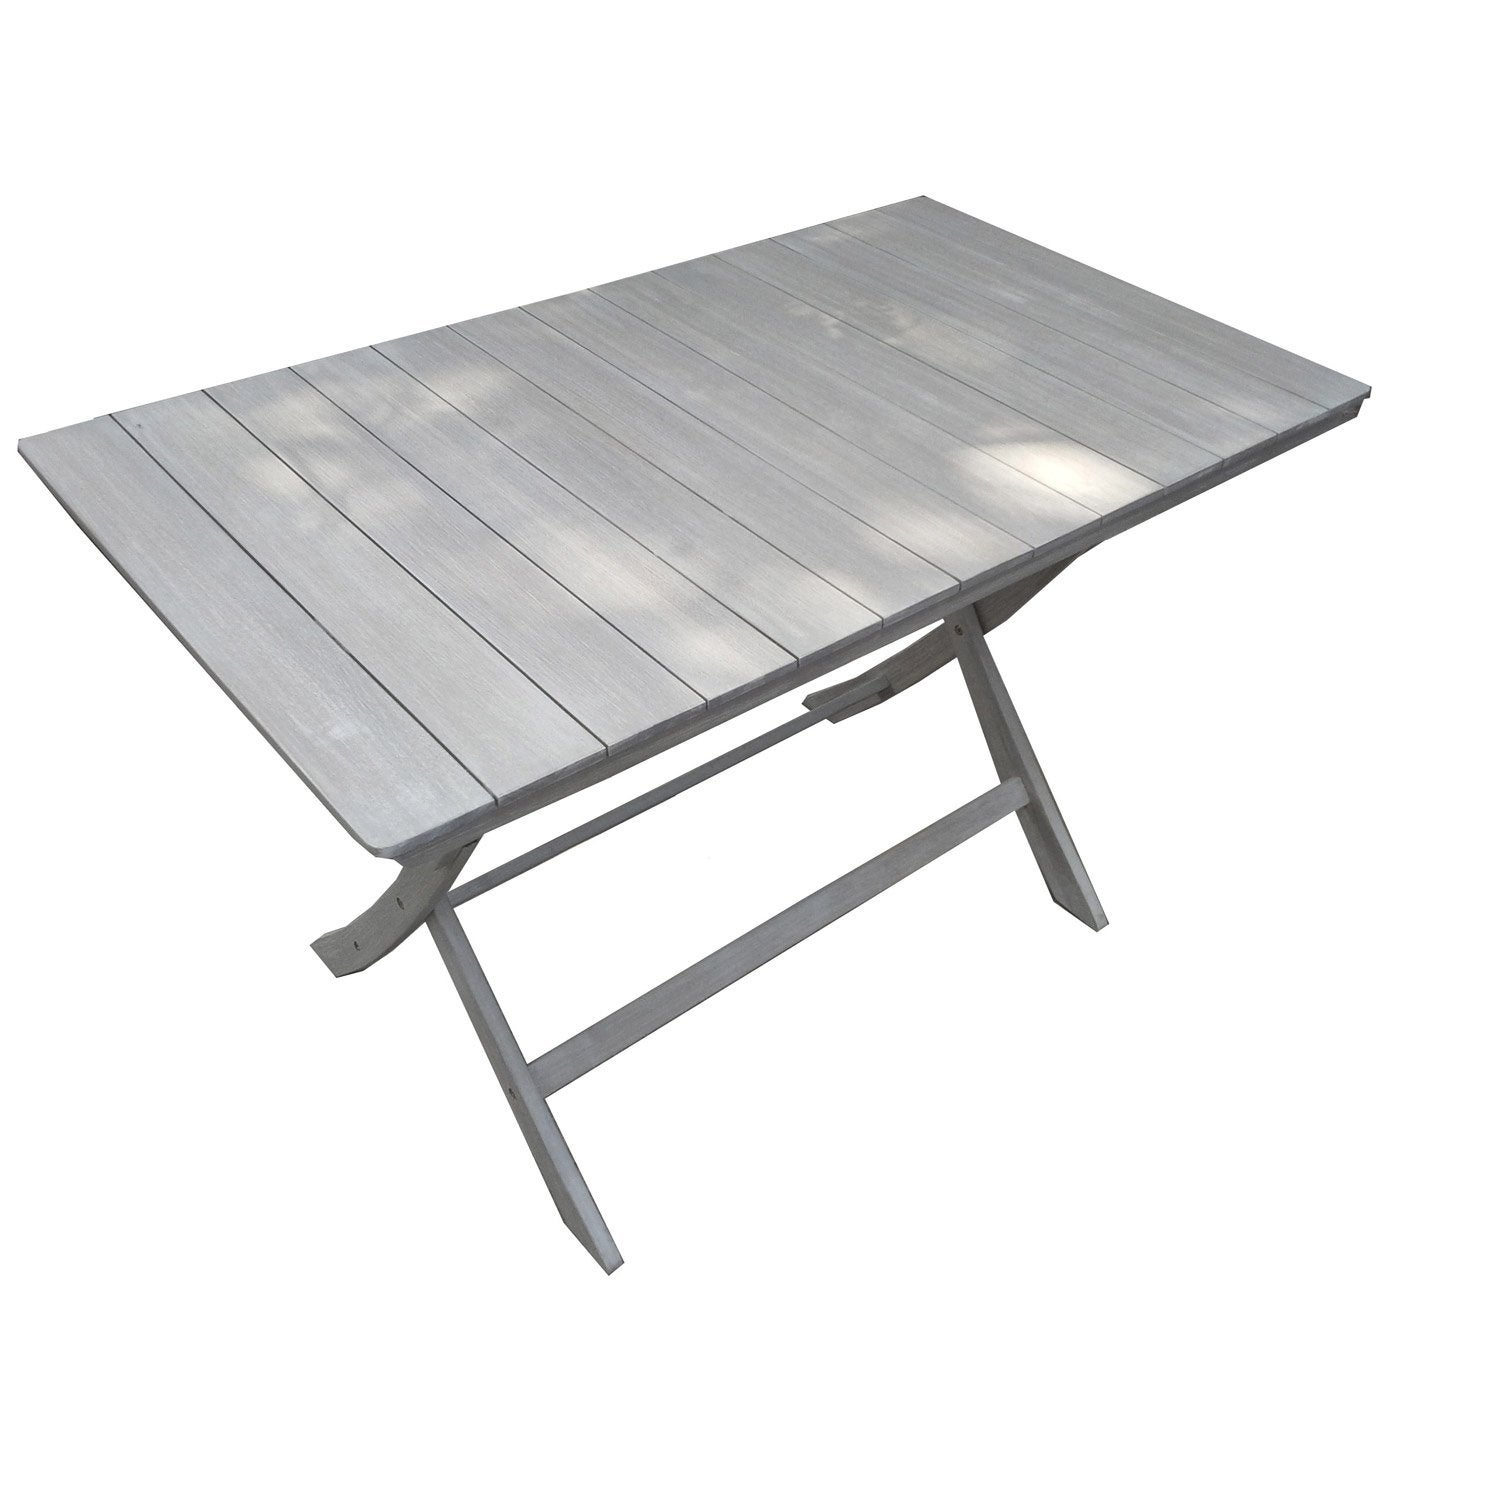 Table de jardin naterial portofino rectangulaire gris 4 - Table roulante de jardin ...